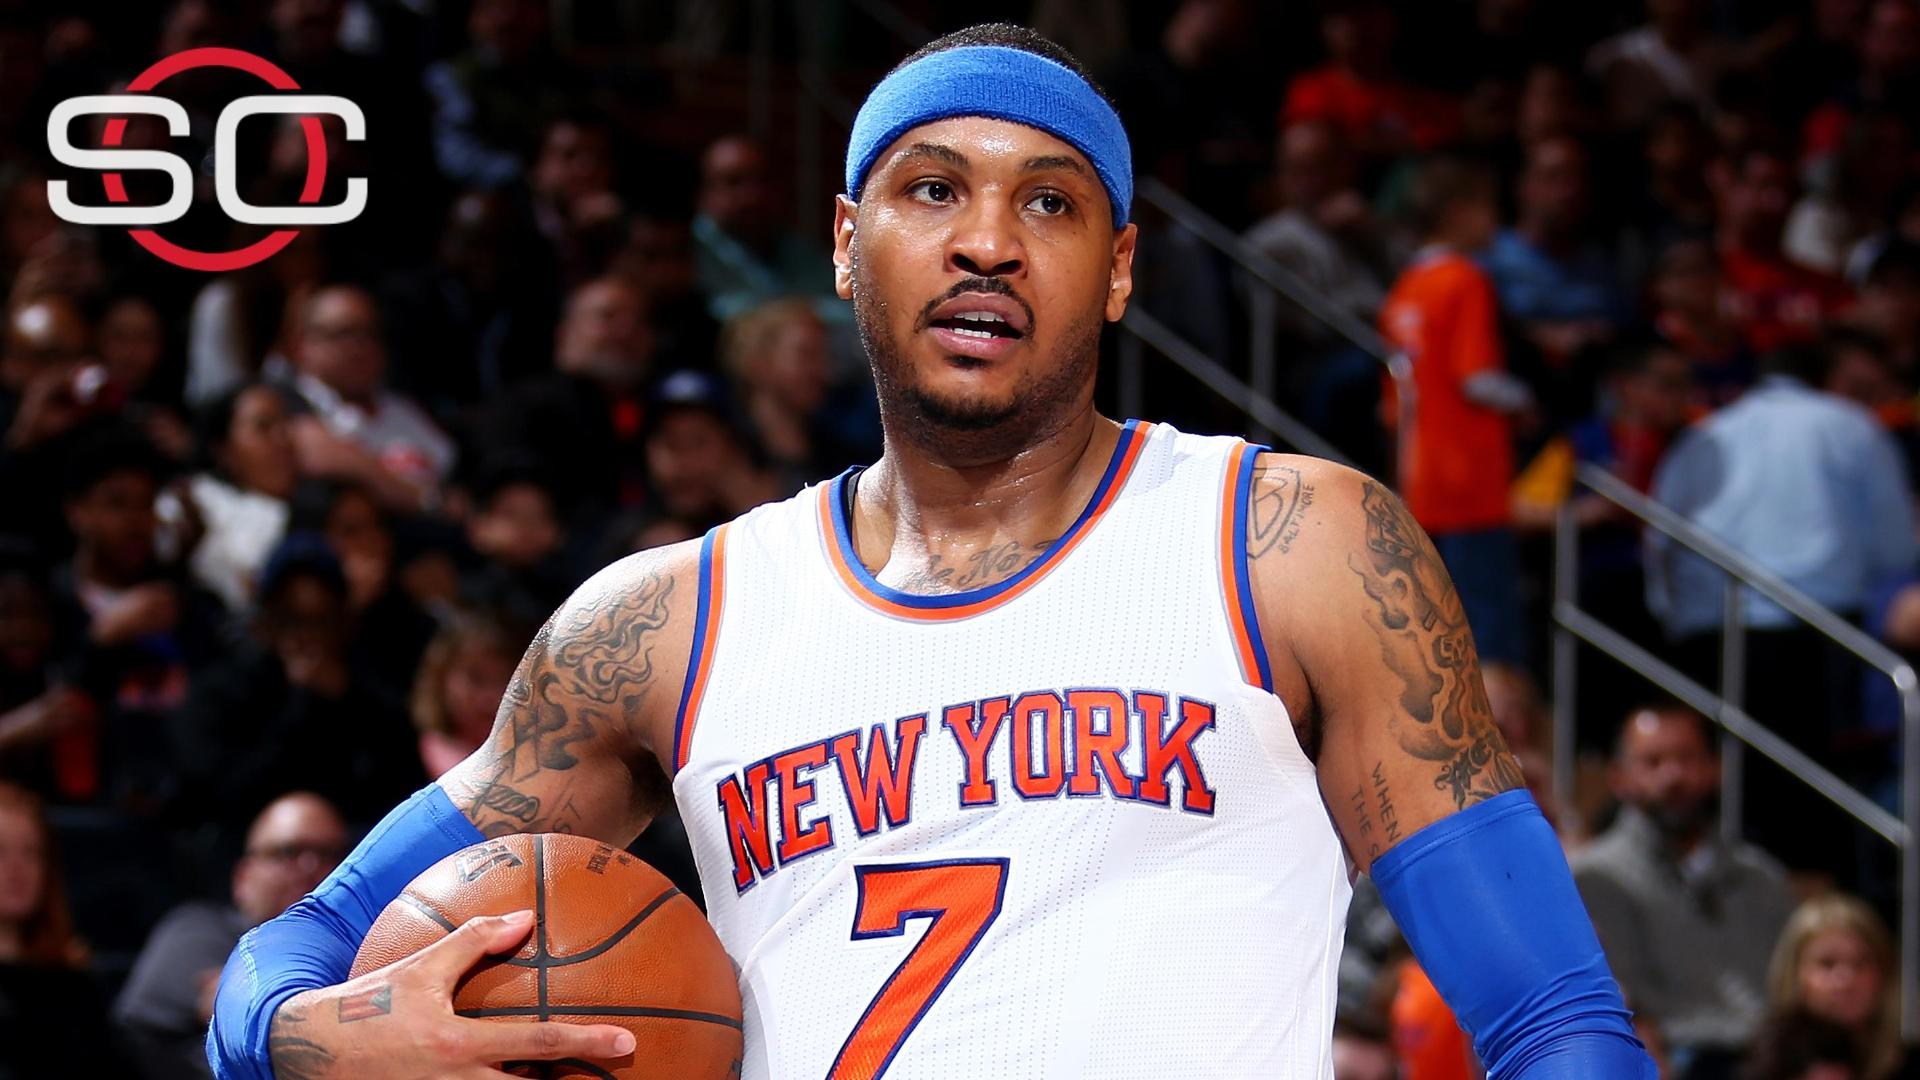 http://a.espncdn.com/media/motion/2016/0330/dm_160330_nba_carmelo_olympics_news856/dm_160330_nba_carmelo_olympics_news856.jpg